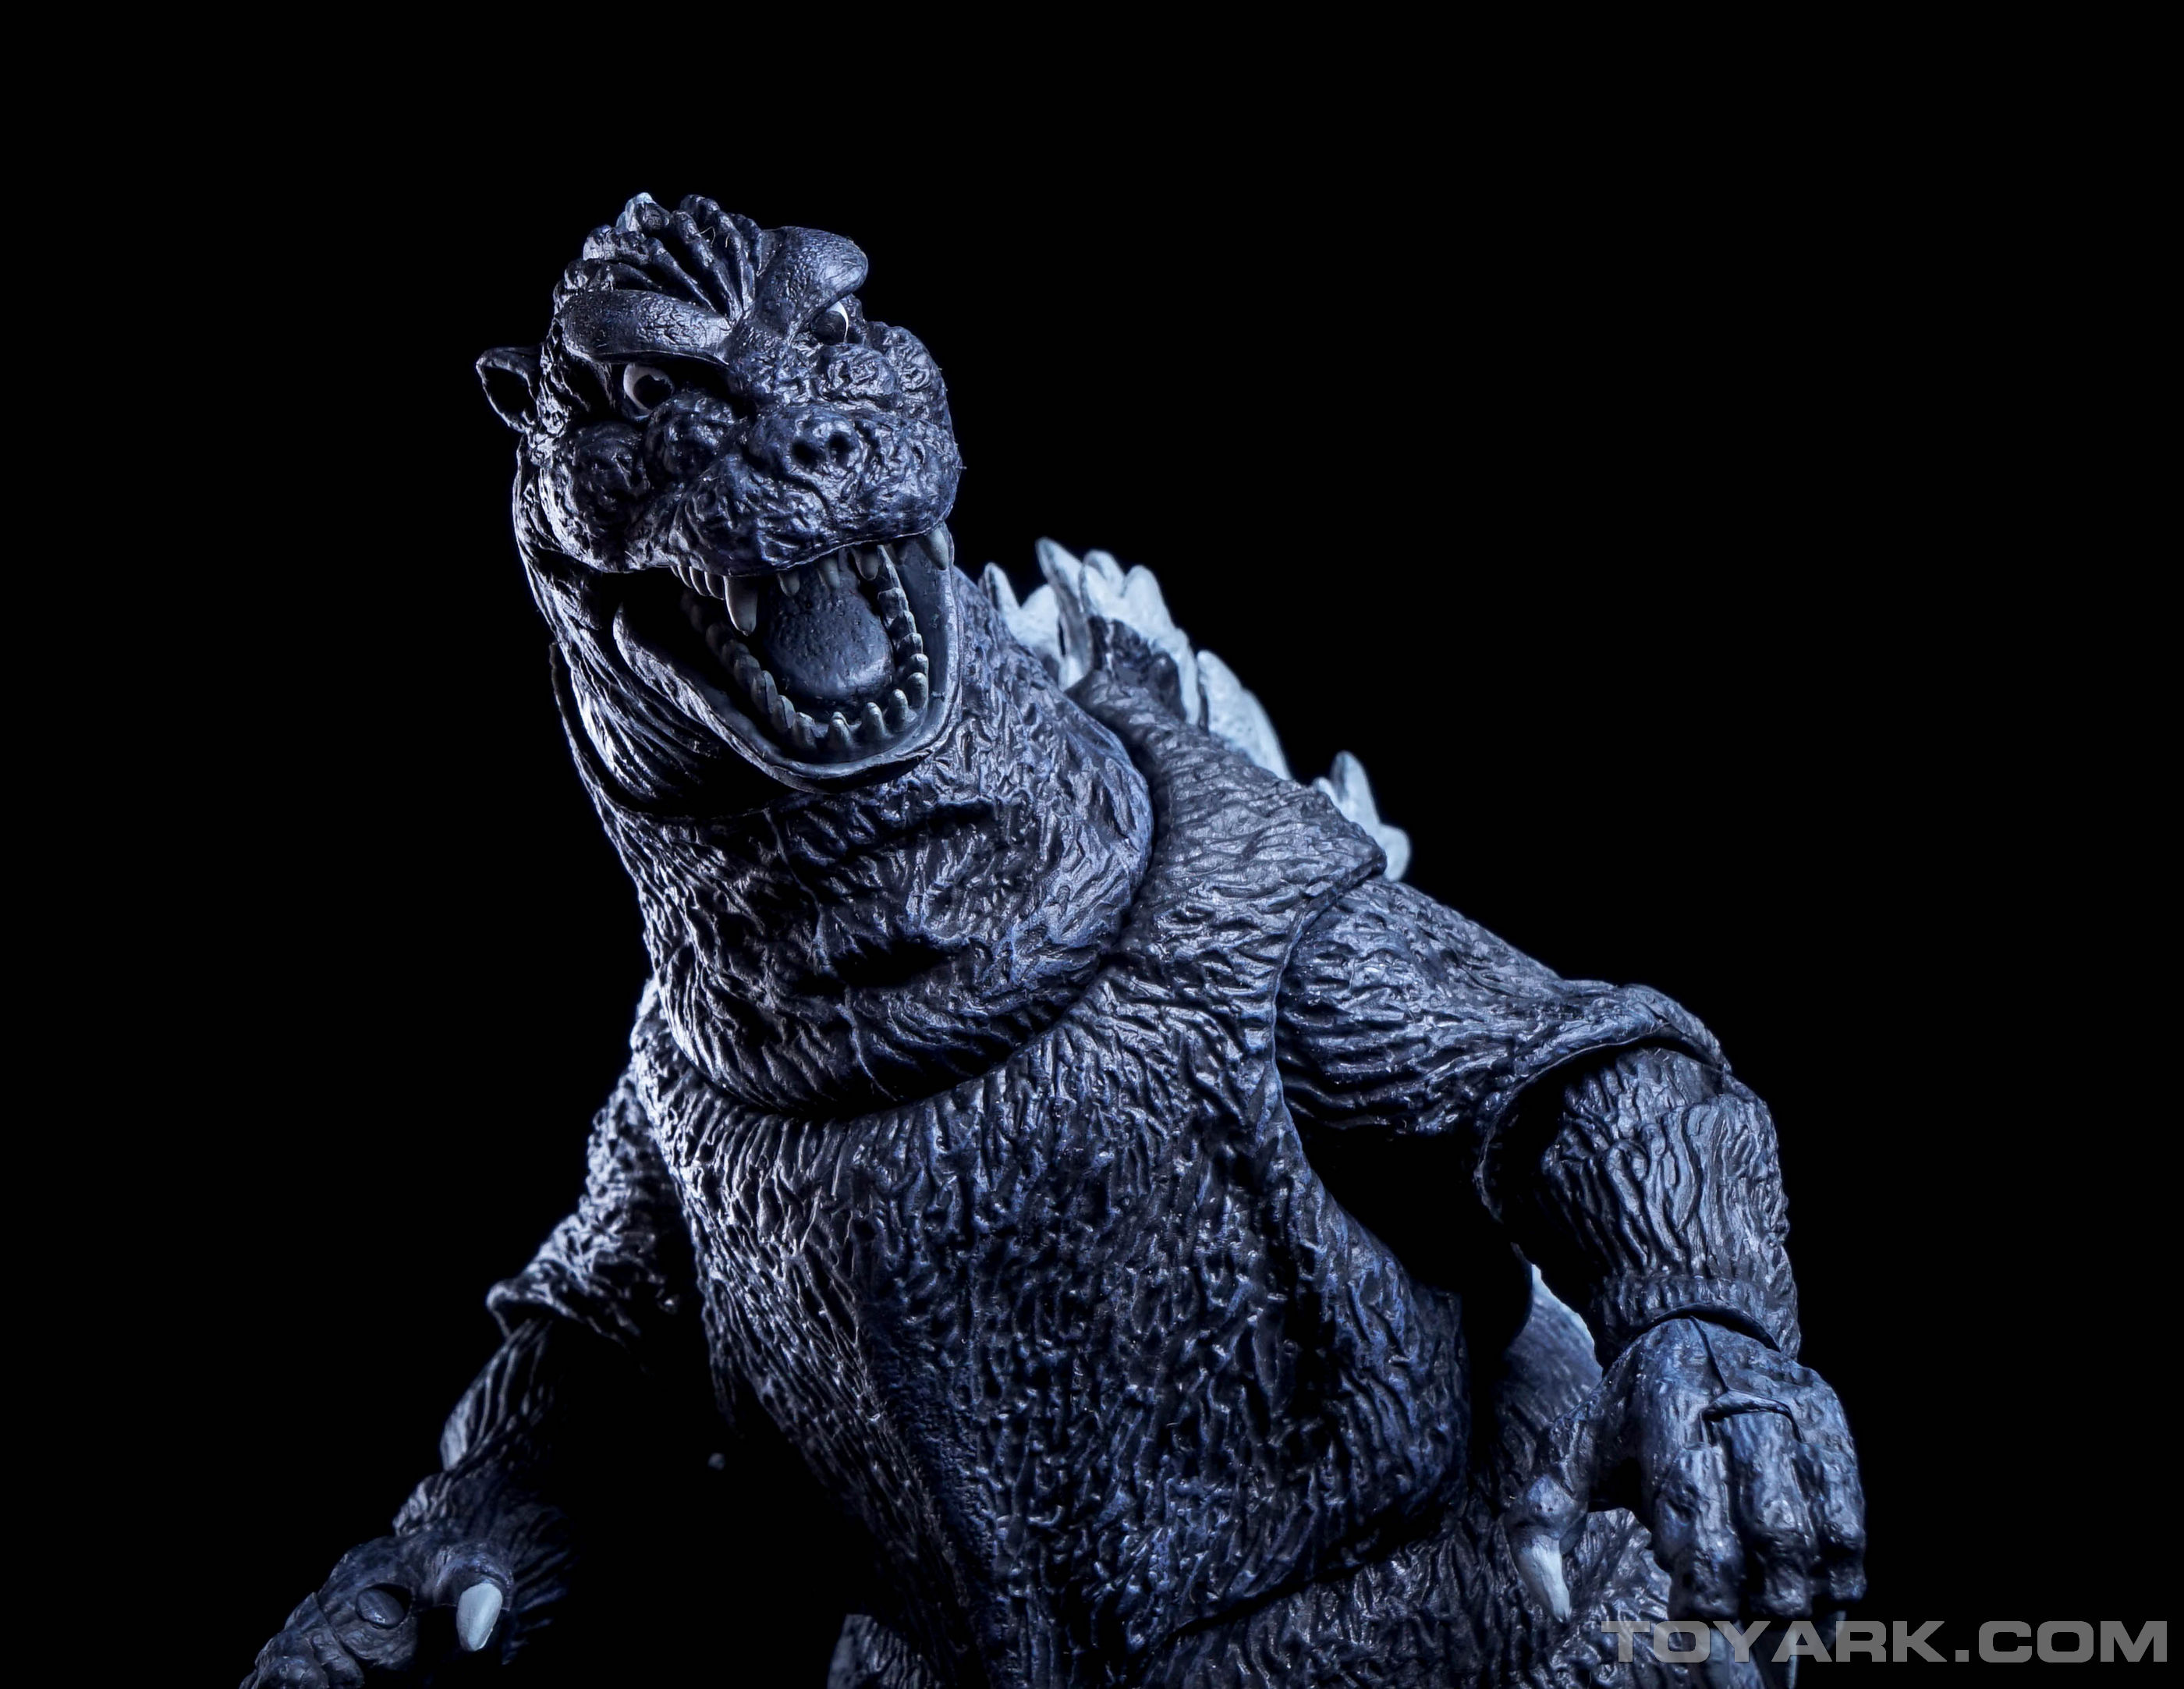 http://news.toyark.com/wp-content/uploads/sites/4/2015/09/NECA-1954-Godzilla-032.jpg